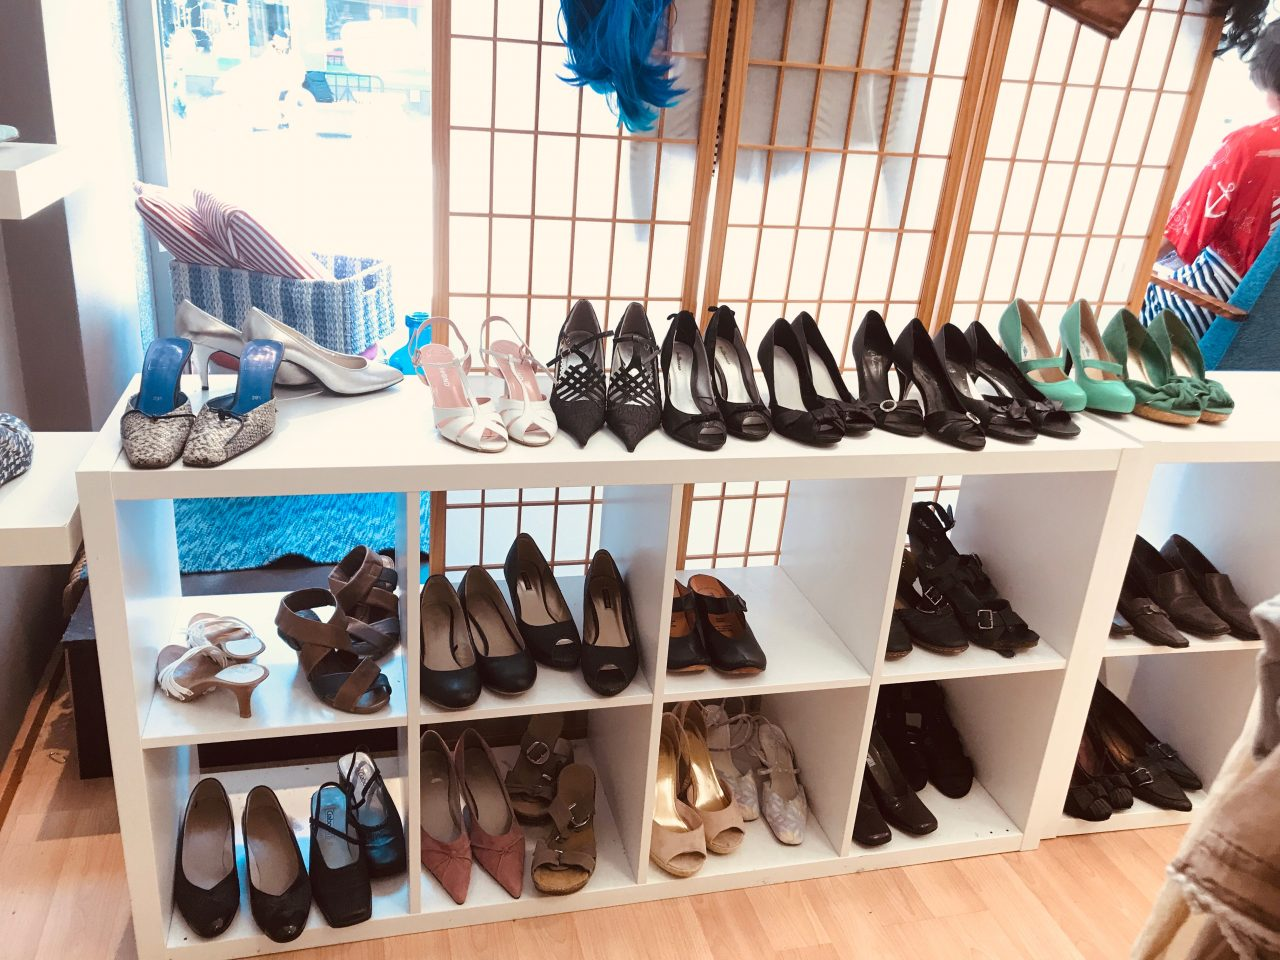 Many pairs of shoes on a shoe rack